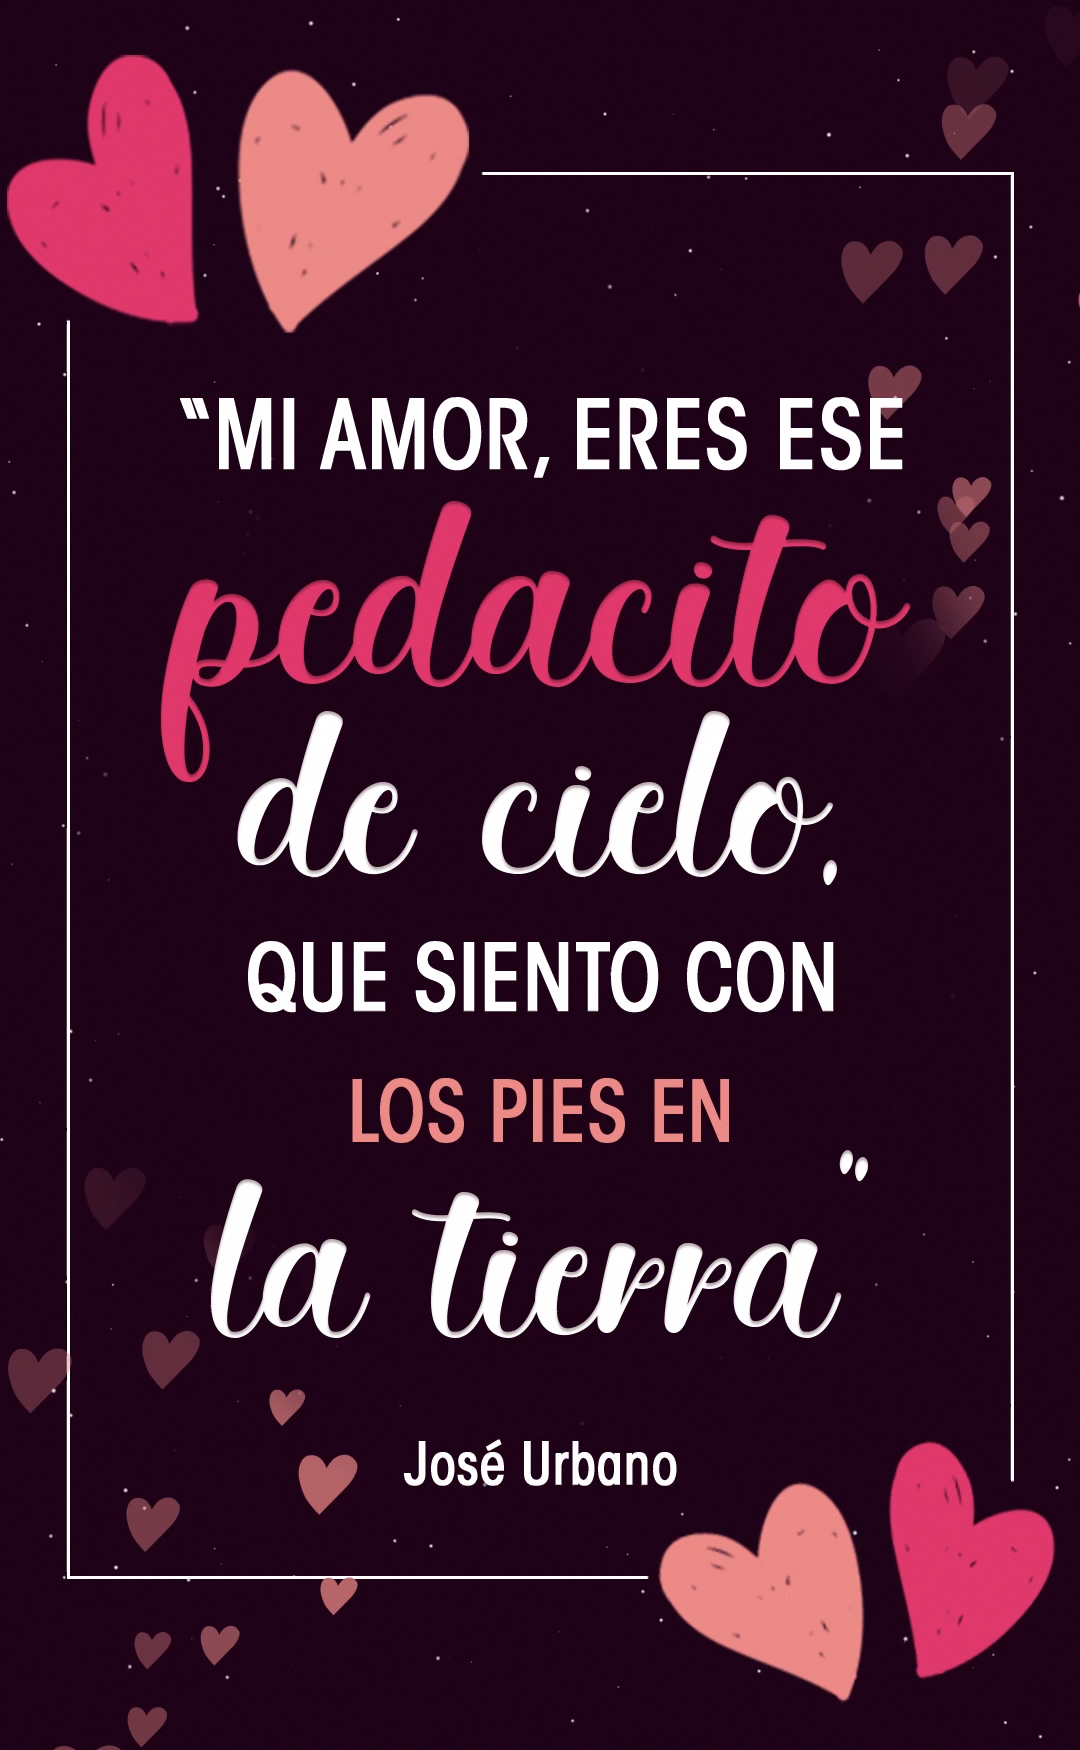 Frases De Amor En Frances In 2020 Inspirational Good Morning Messages Love Phrases Life Quotes